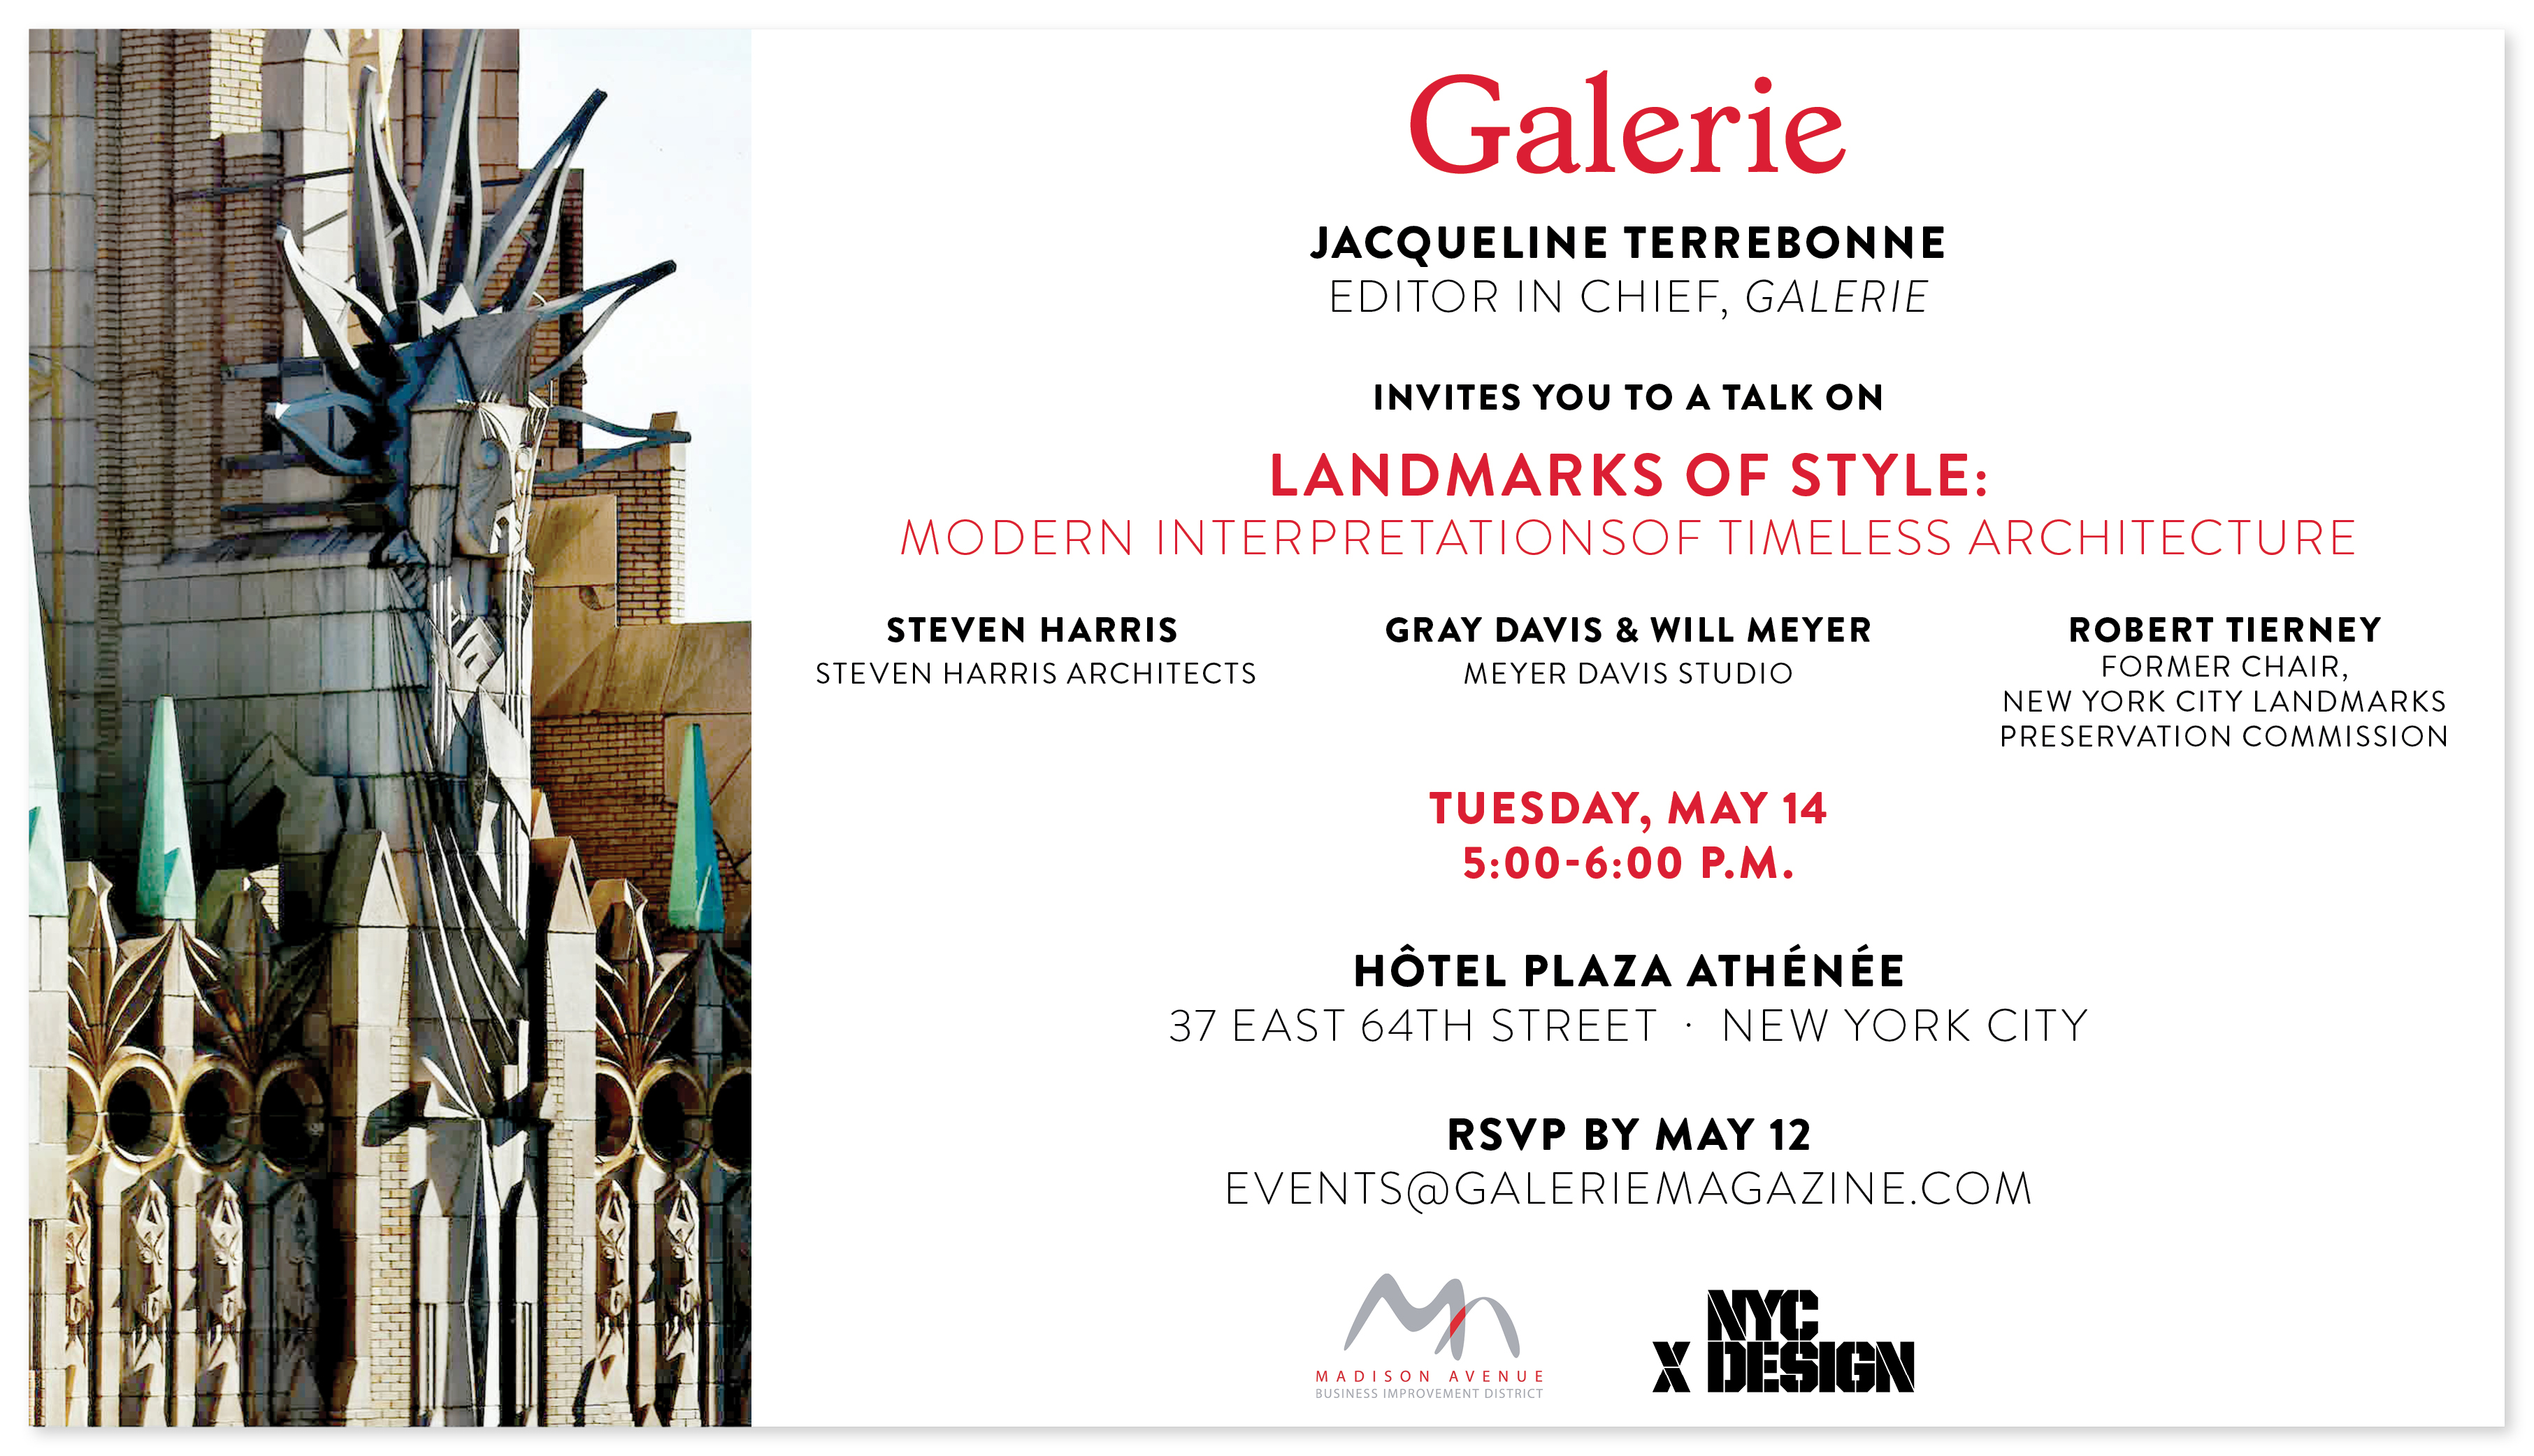 (English) Galerie Magazine Panel on Landmarks of Style, May 14